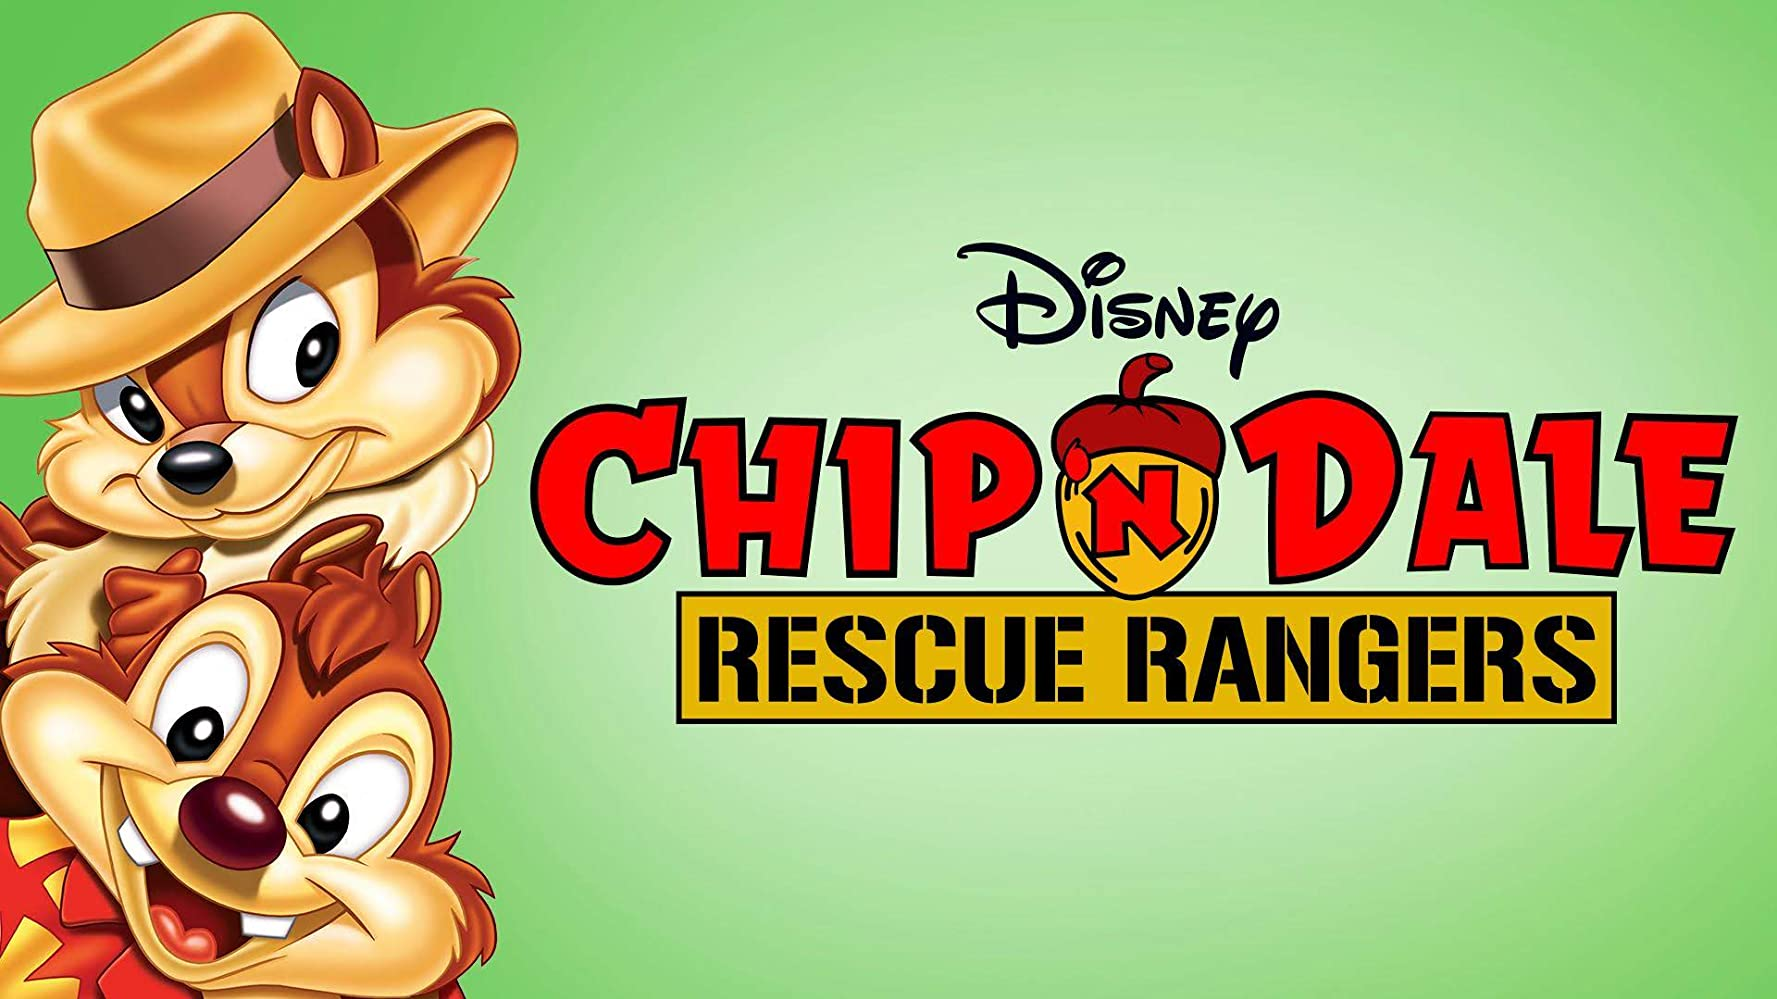 'Chip 'n Dale Rescue Rangers' Is Getting a Live Action Movie